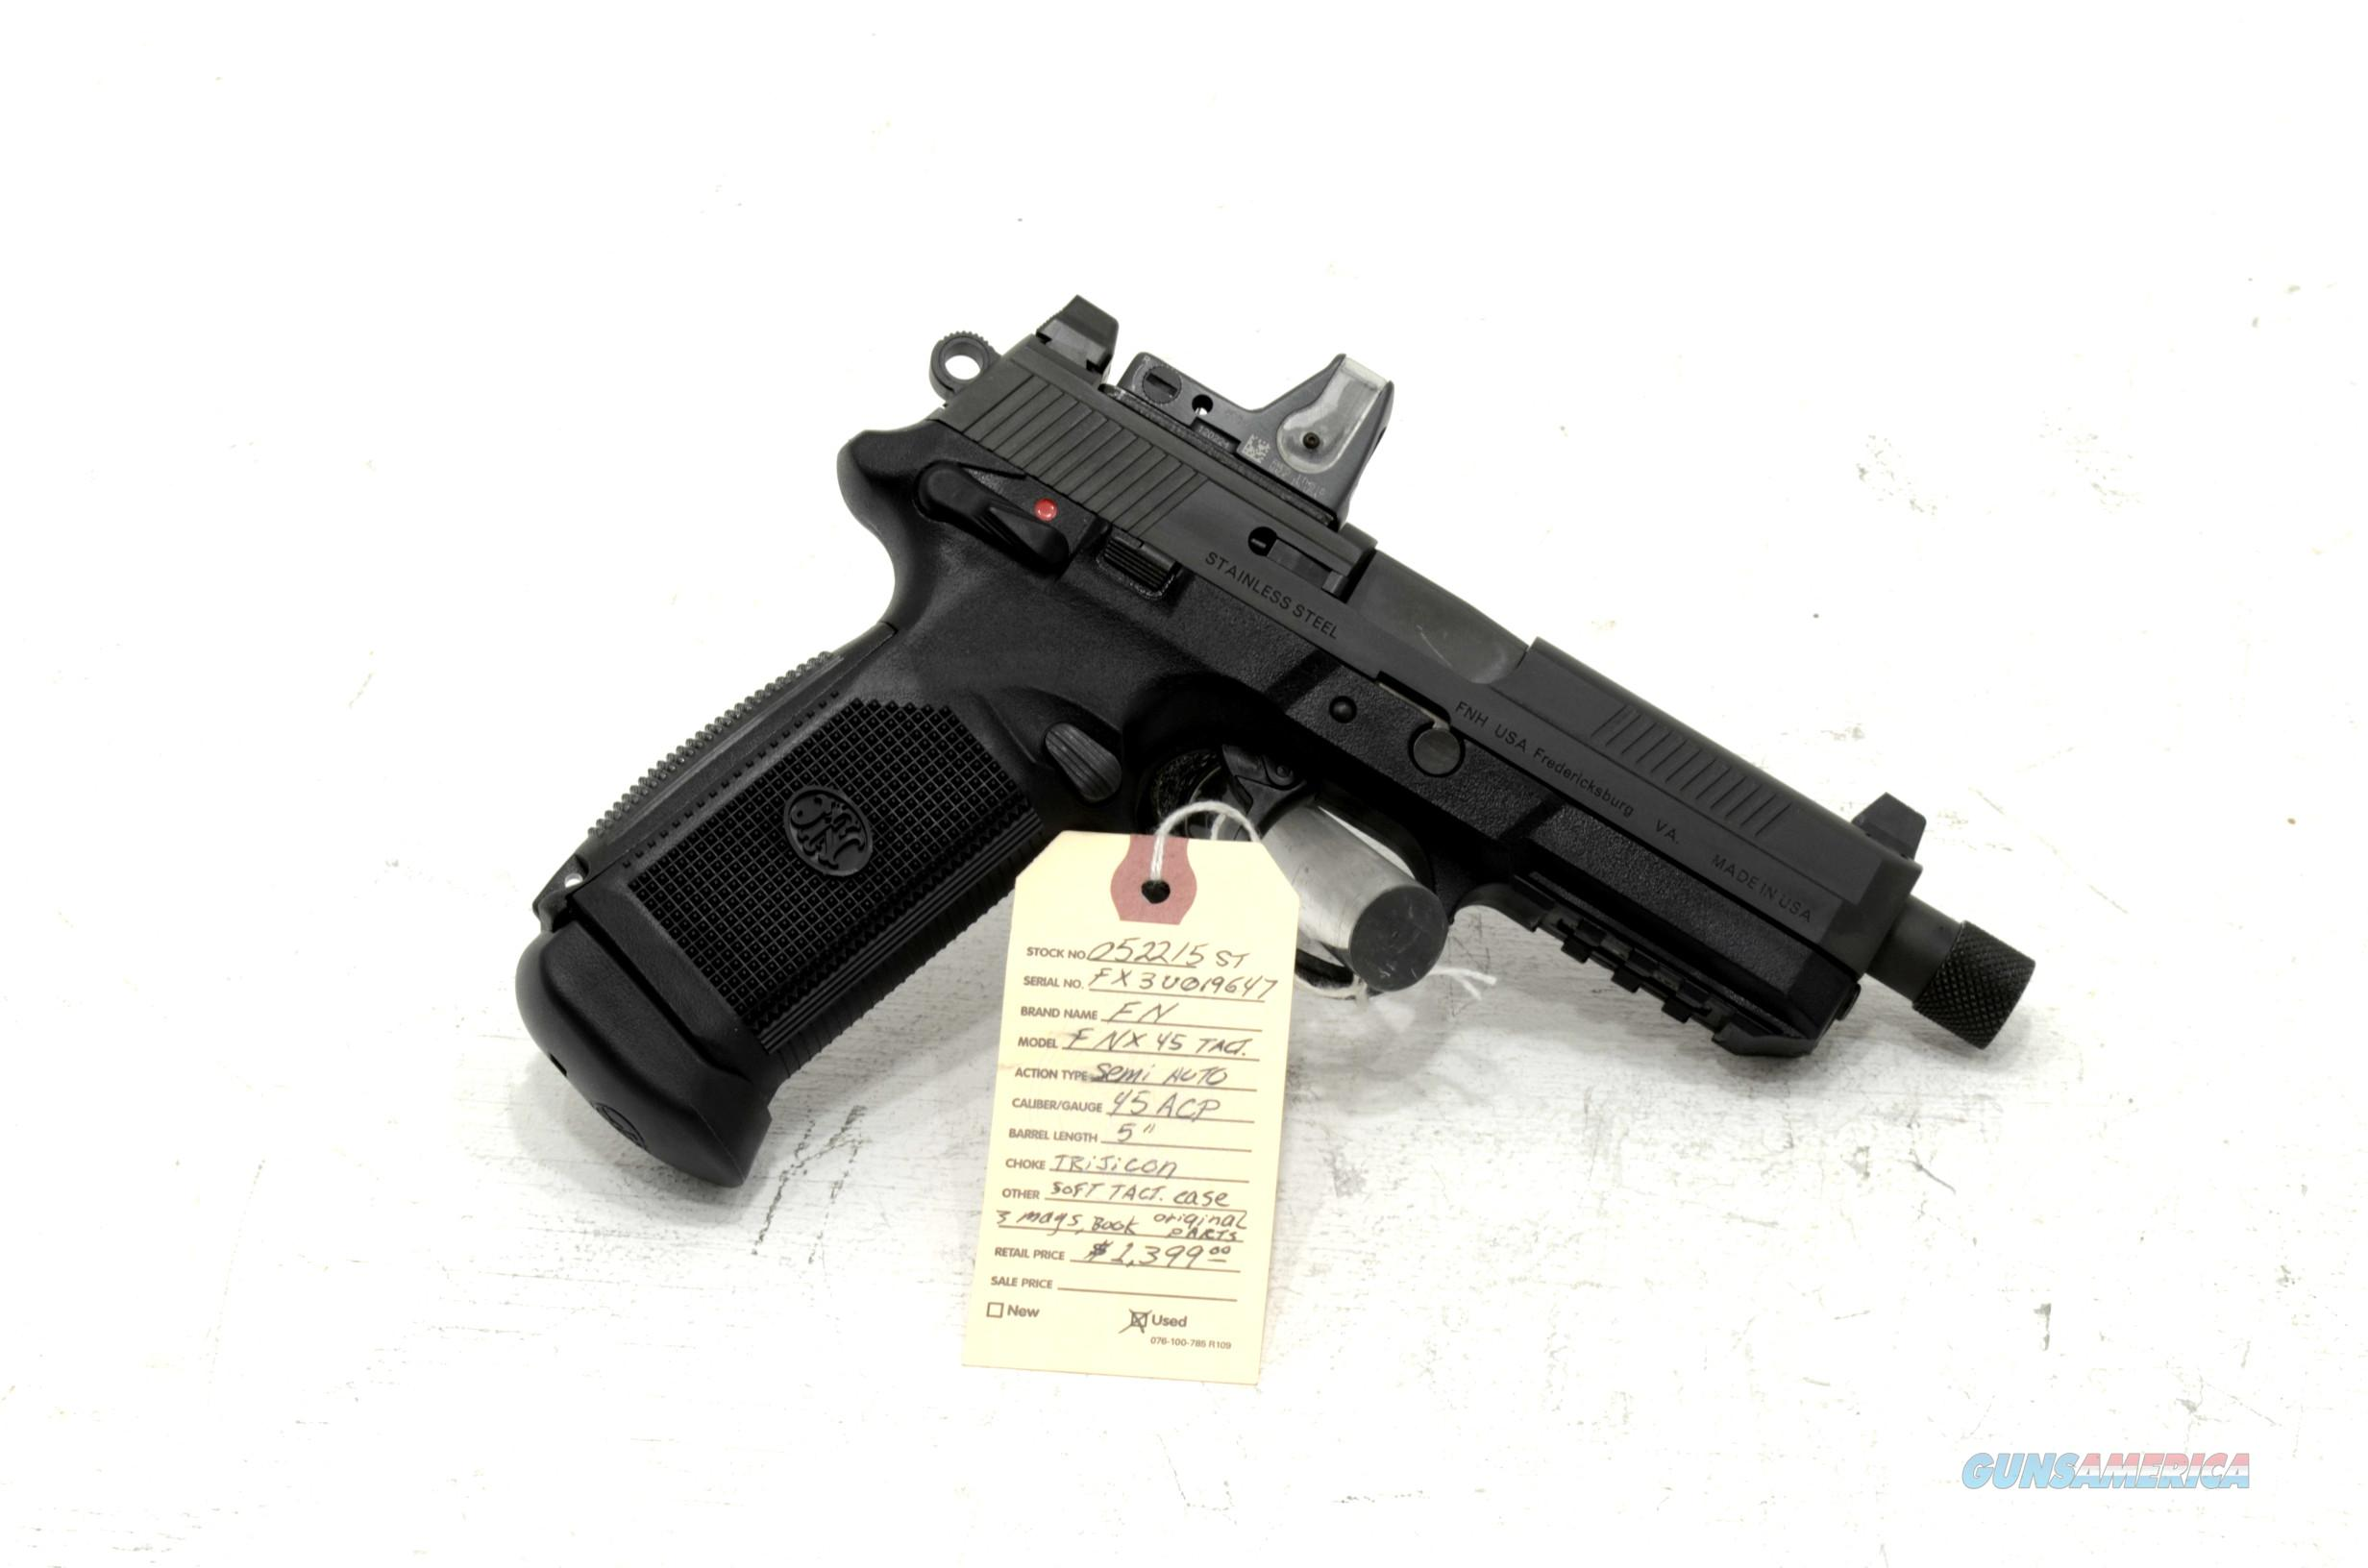 "FNH, FNX-45 Tactical .45acp pistol  5"" barrel with Trijicon sight  Guns > Pistols > FNH - Fabrique Nationale (FN) Pistols > FNX"